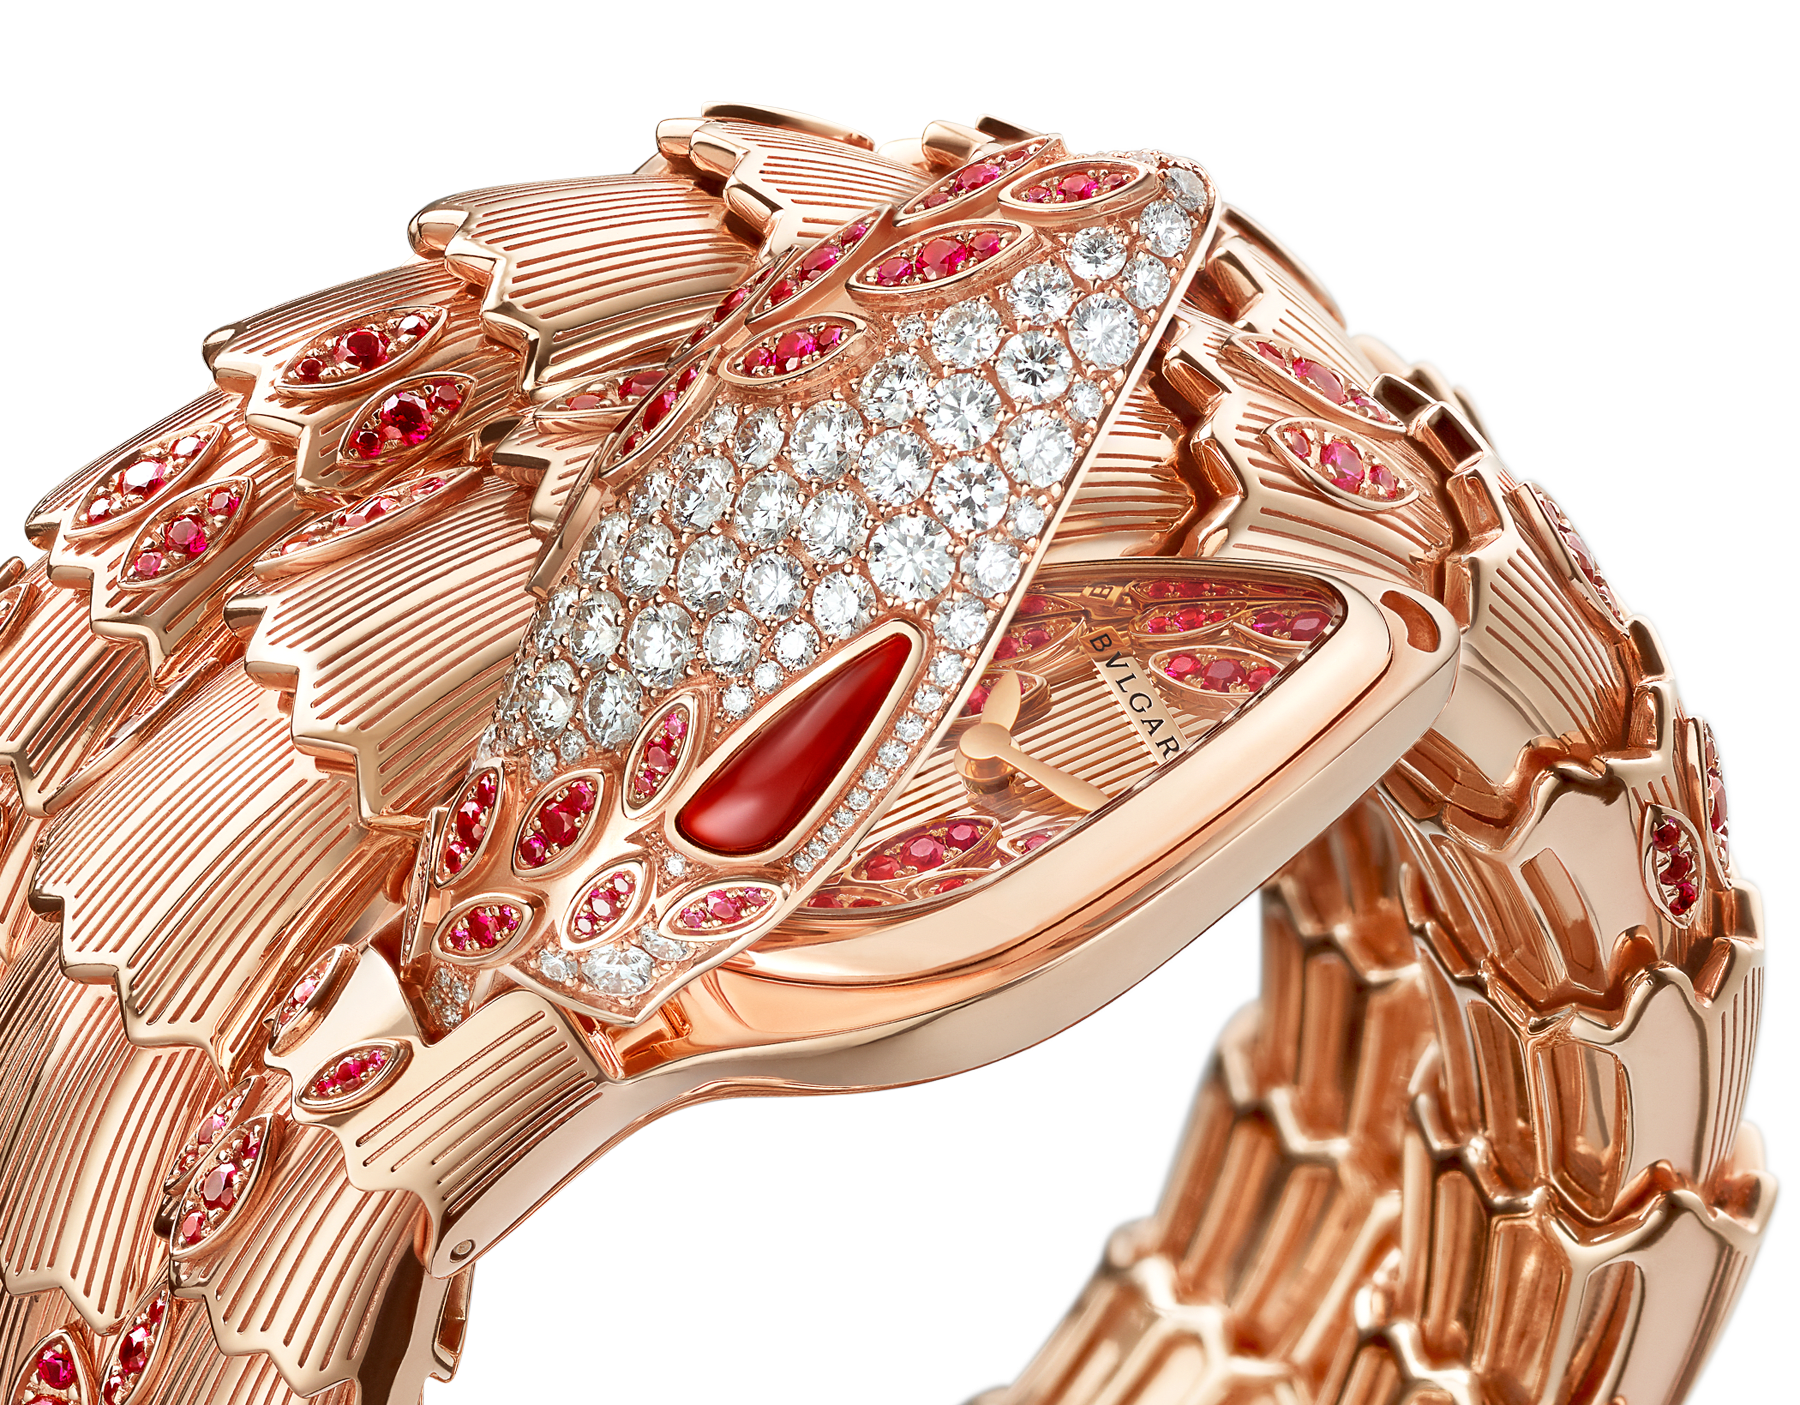 Serpenti Secret Watch with 18 kt rose gold head set with brilliant cut diamonds, brilliant cut rubies and carnelian eyes, 18 kt rose gold case, 18 kt rose gold dial and double spiral bracelet, both set with brilliant cut rubies. 102014 image 2